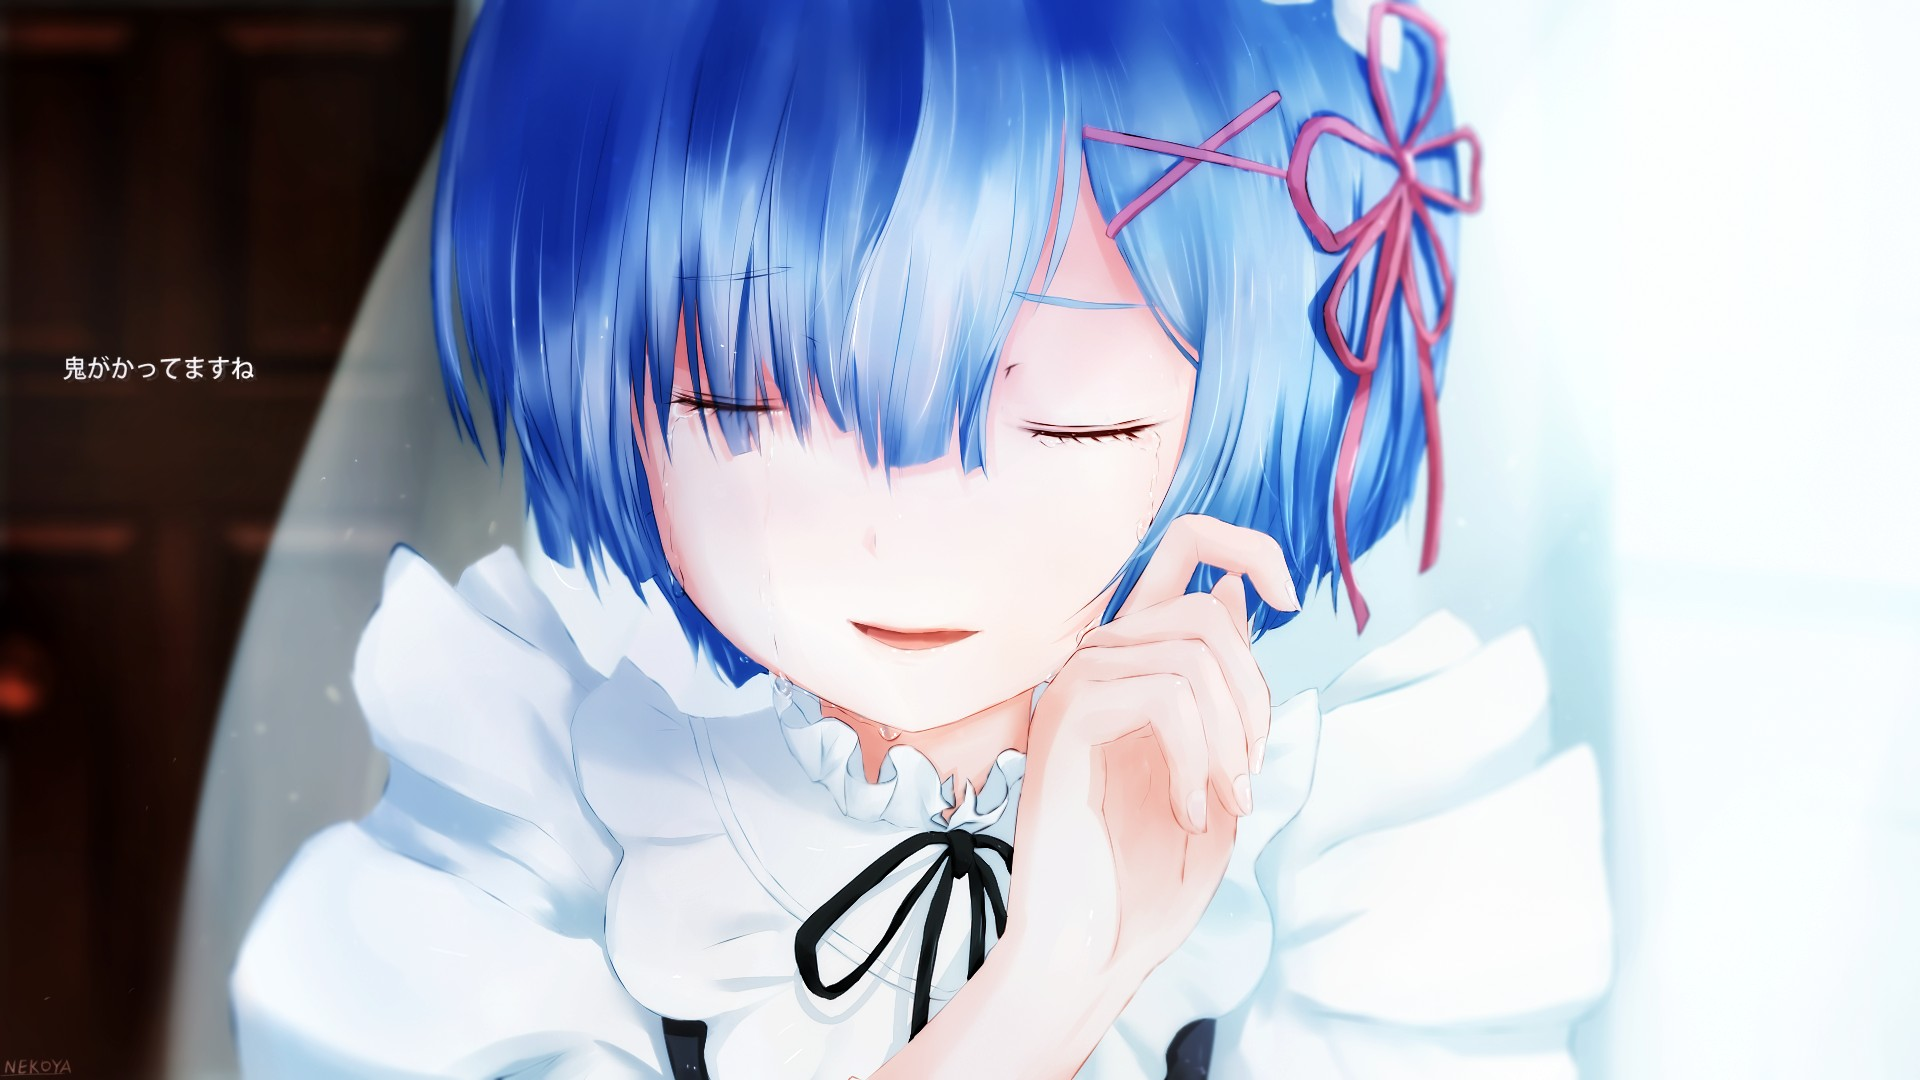 Cool Girls Overwatch Wallpapers Rem Re Zero Wallpaper 183 ① Download Free Cool Hd Backgrounds